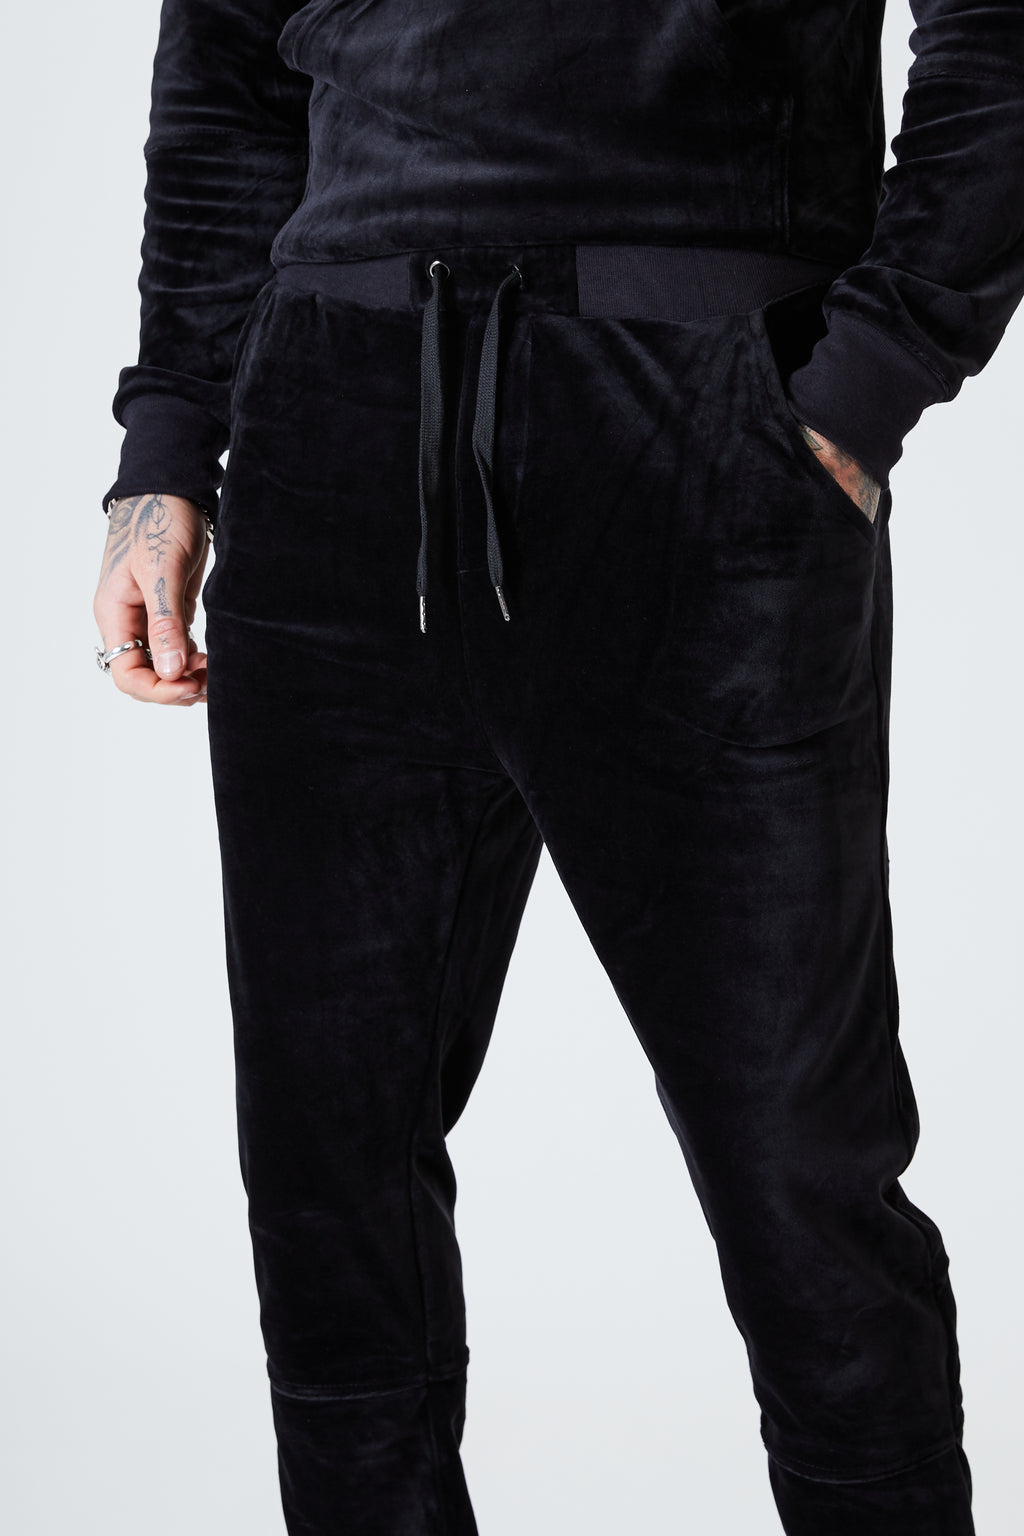 Luxe Velour Track Pants - Black - SVPPLY. STUDIOS